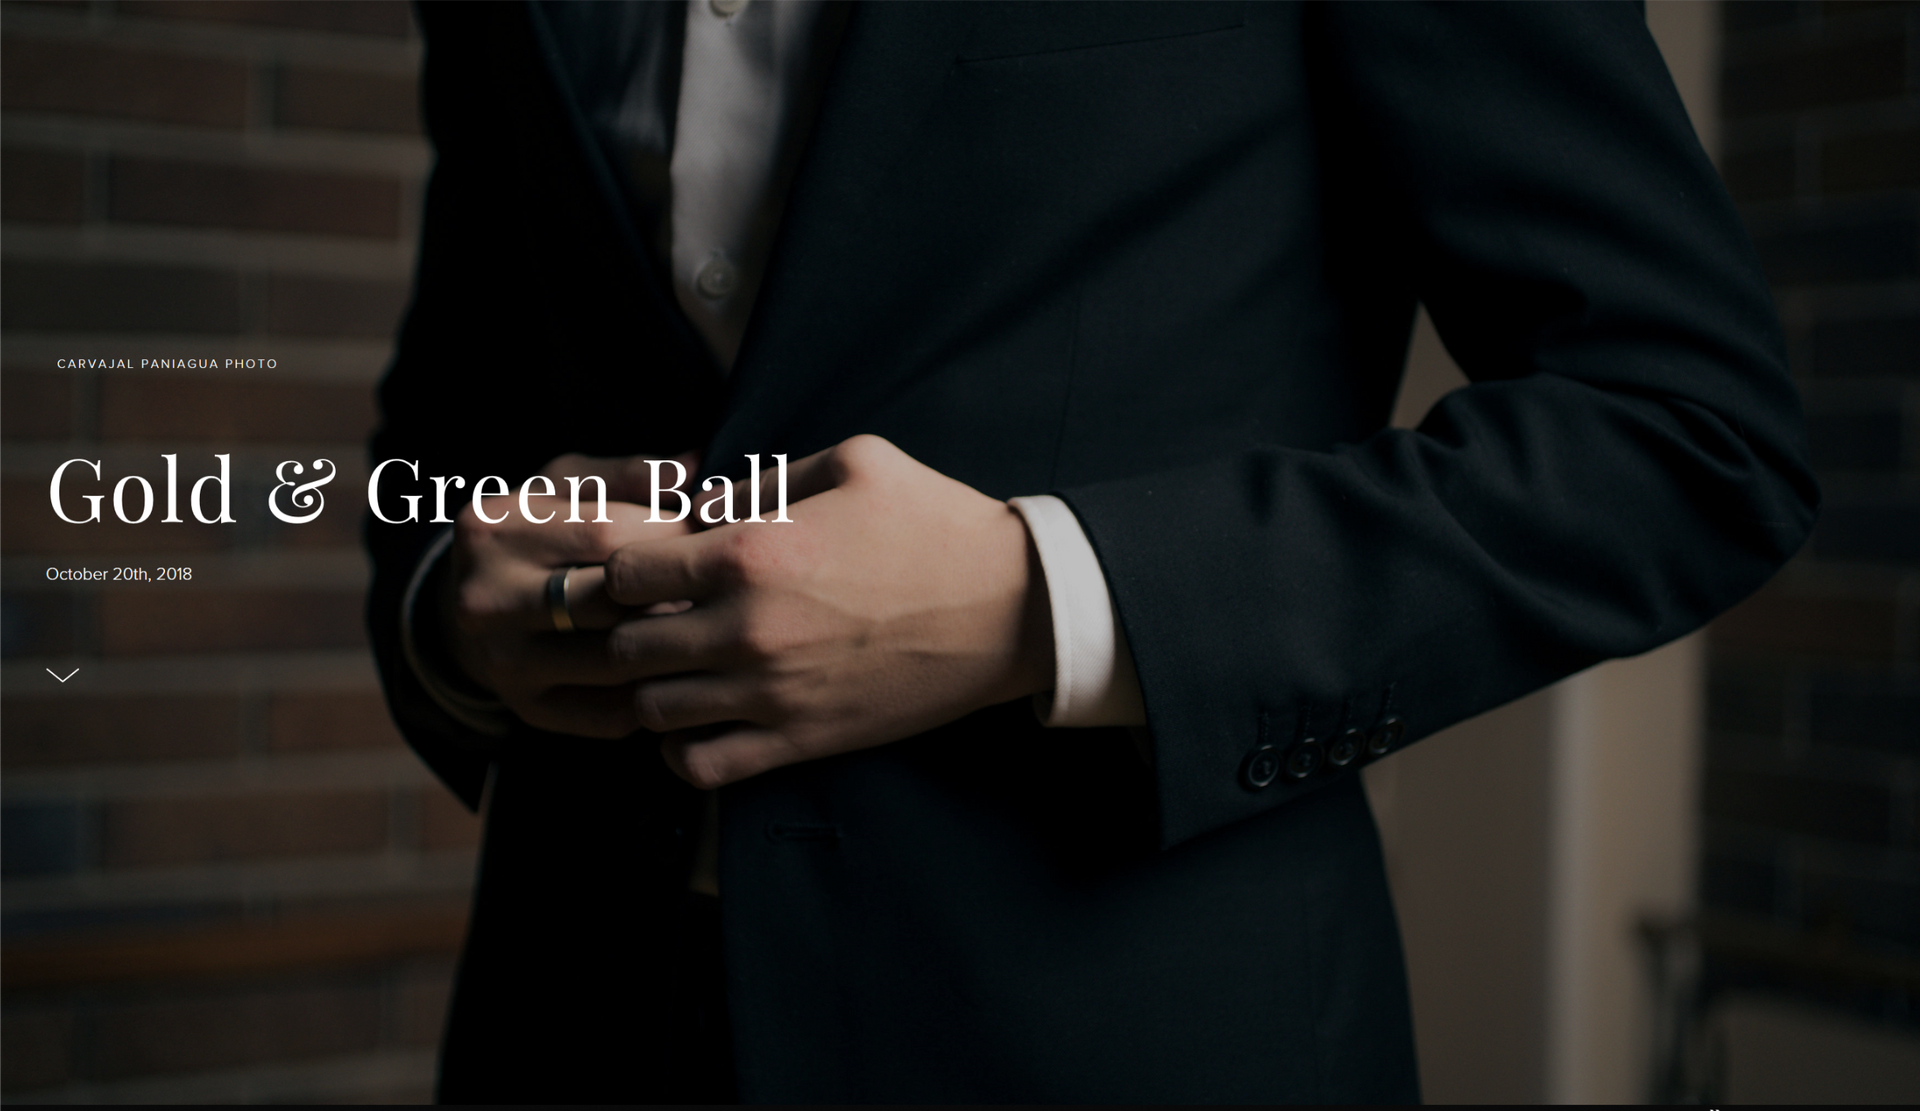 Gold & Green Ball